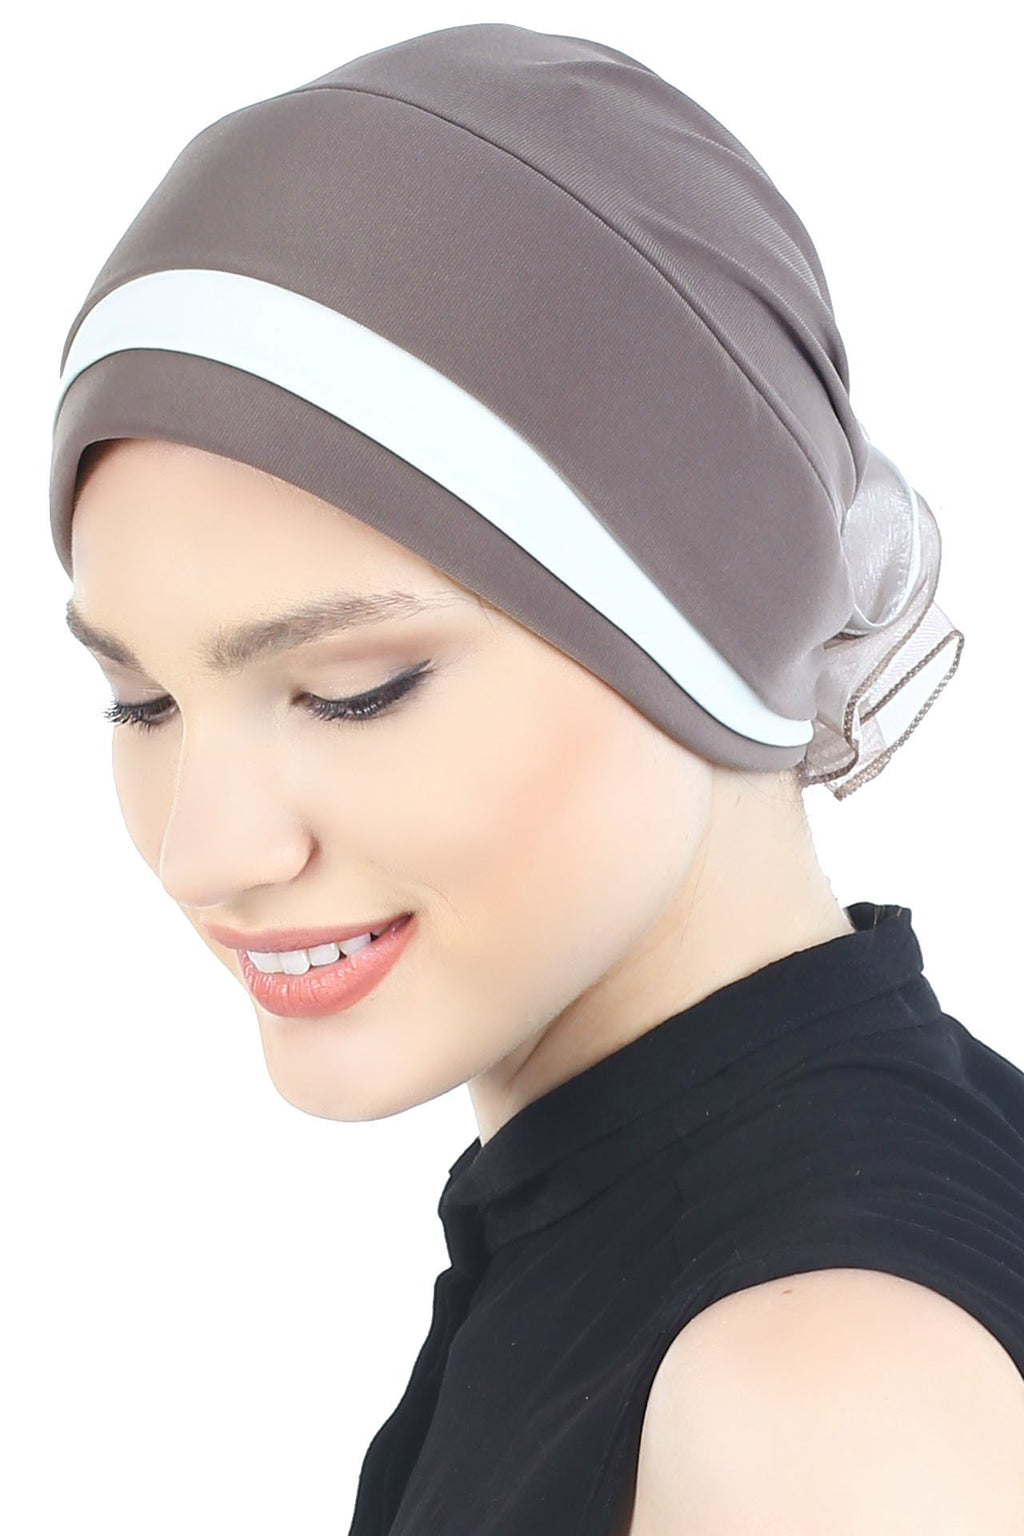 Deresina Padded hat for cancer patients mink cream